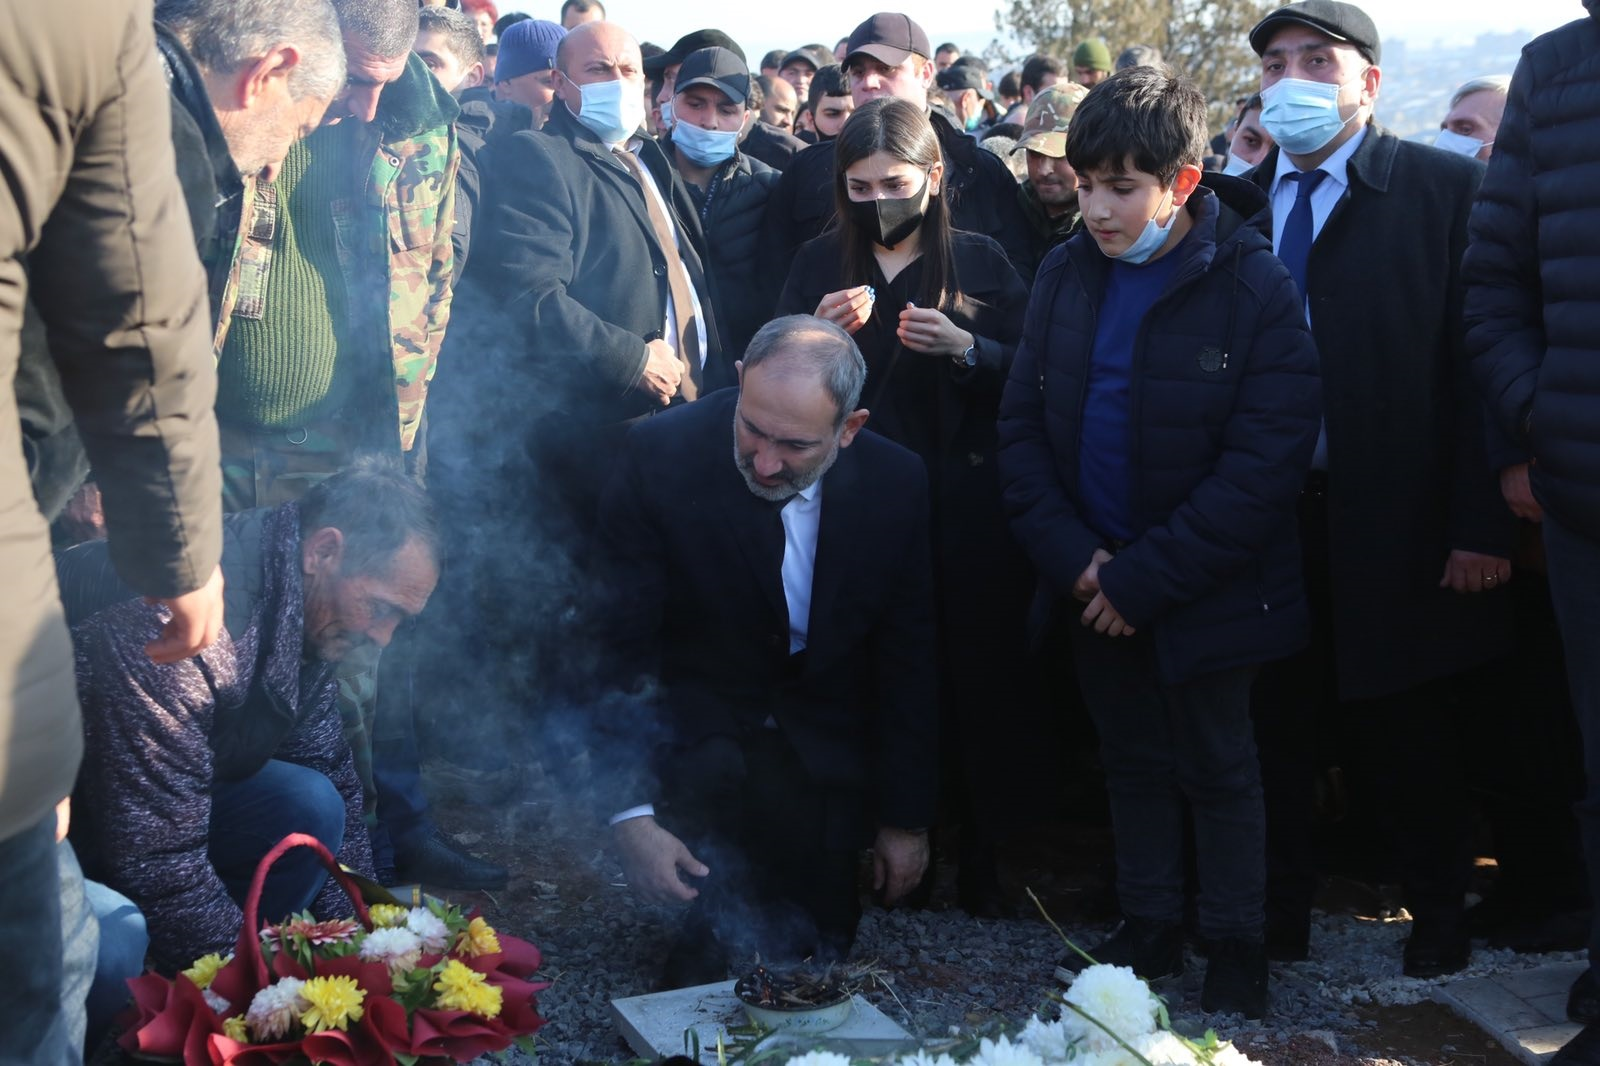 border security, Armenia, Syunik, mourning procession, protest, the first day of mourning in memory of those killed in the Karabakh war, address of the Prime Minister, Nikol Pashinyan, resignation,